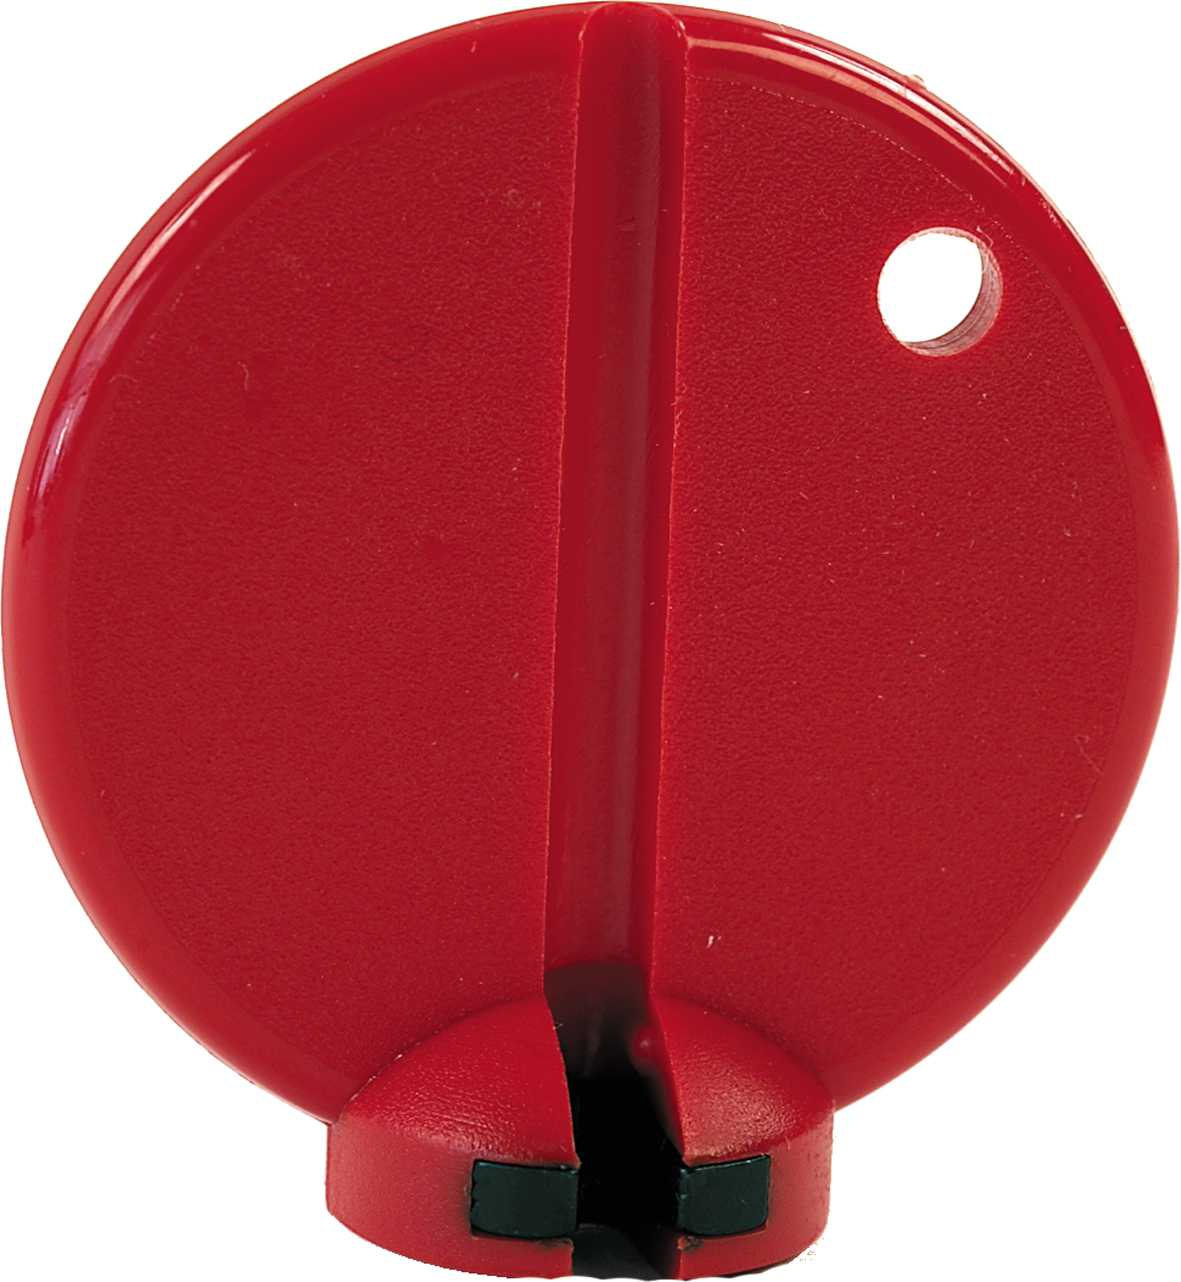 Spokey 3.25mm Spoke Key Tool - Red